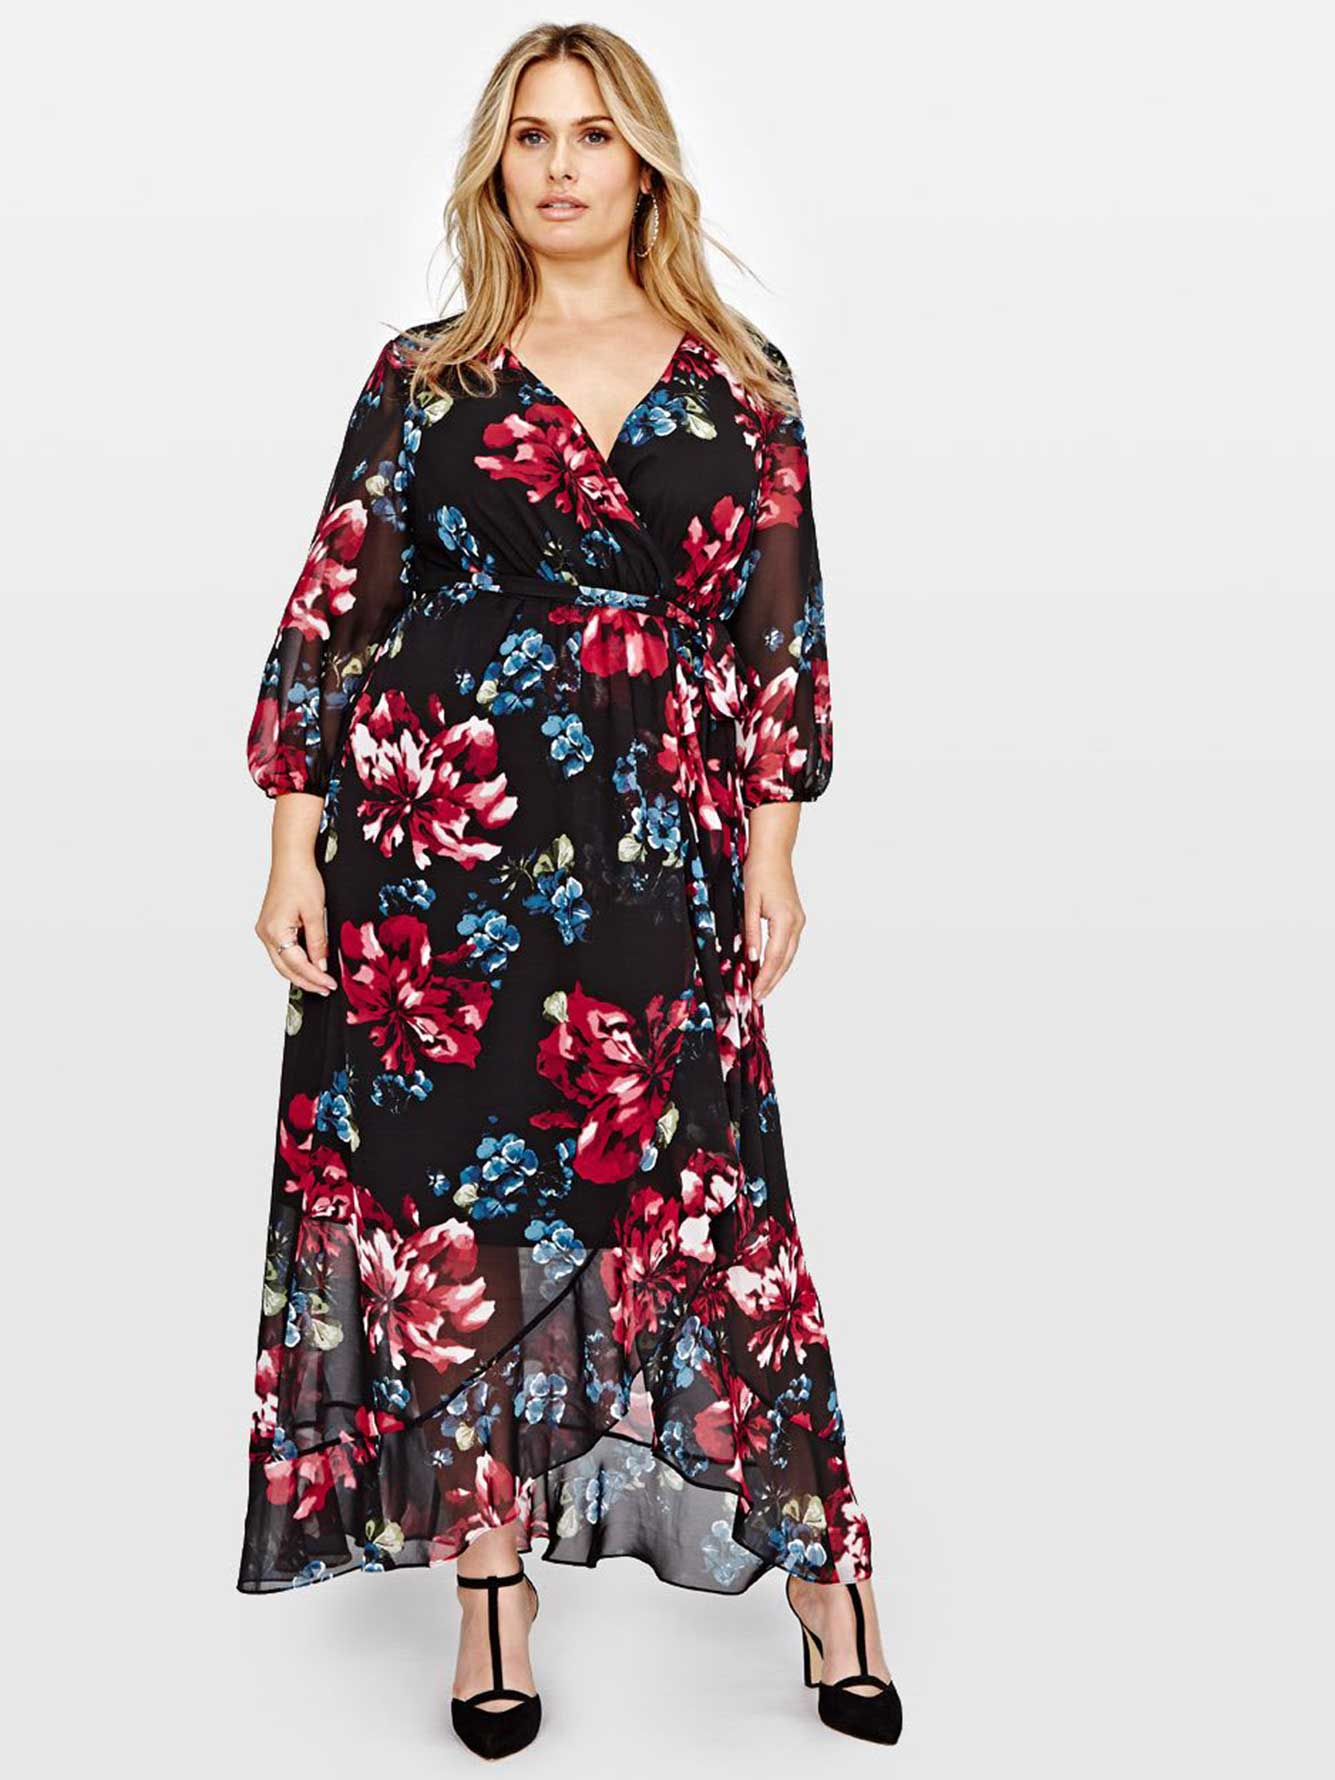 cec82c144a2 Michel Studio Sangria 3 4 Sleeve Wrap Printed Maxi Dress